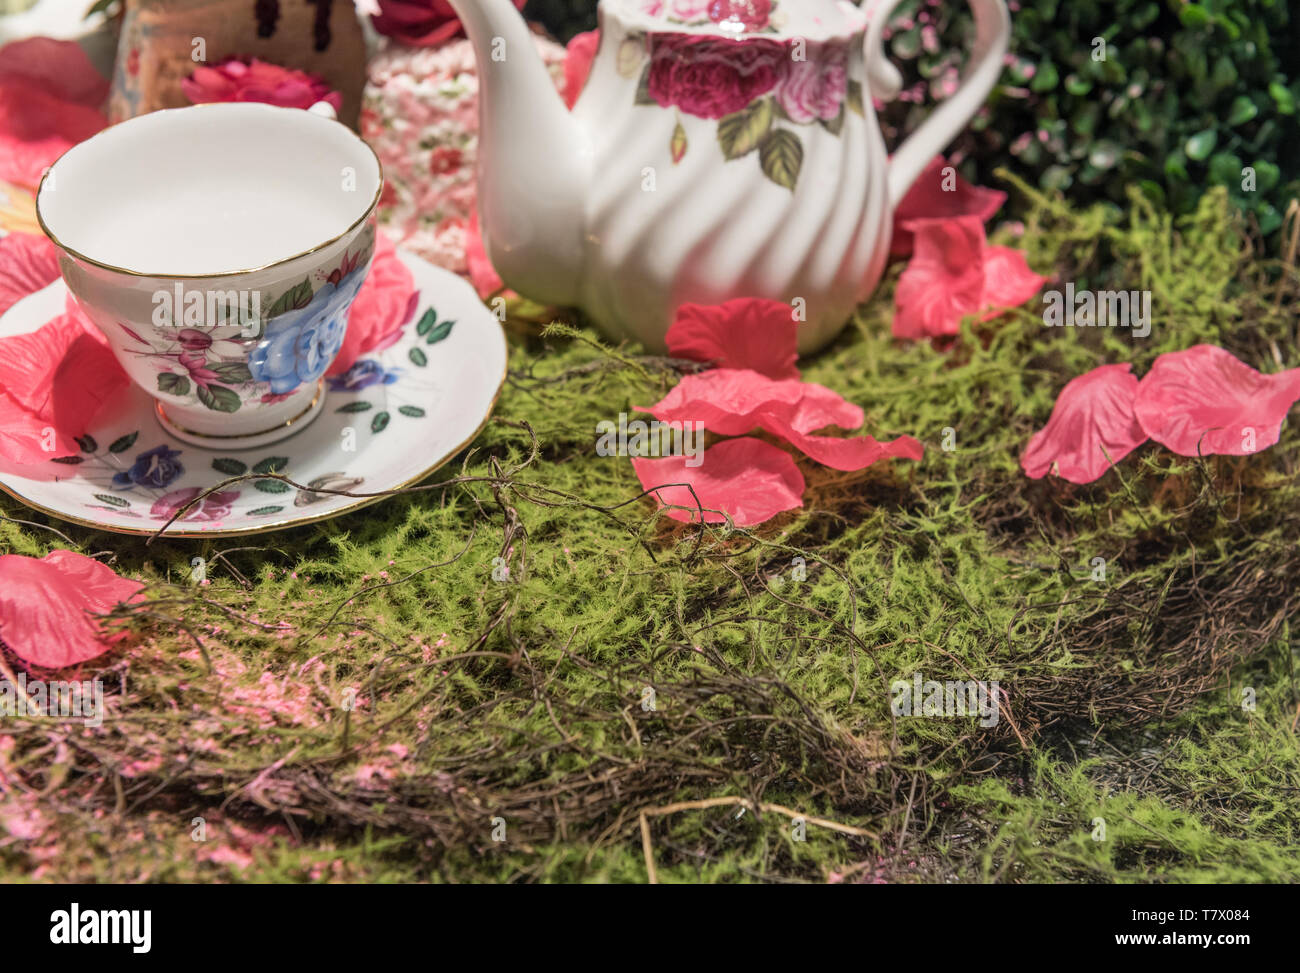 Luxurious Cream Tea Picnic Party Scene with Flower Petals and Old Fashioned Porcelin Tea Set - Stock Image